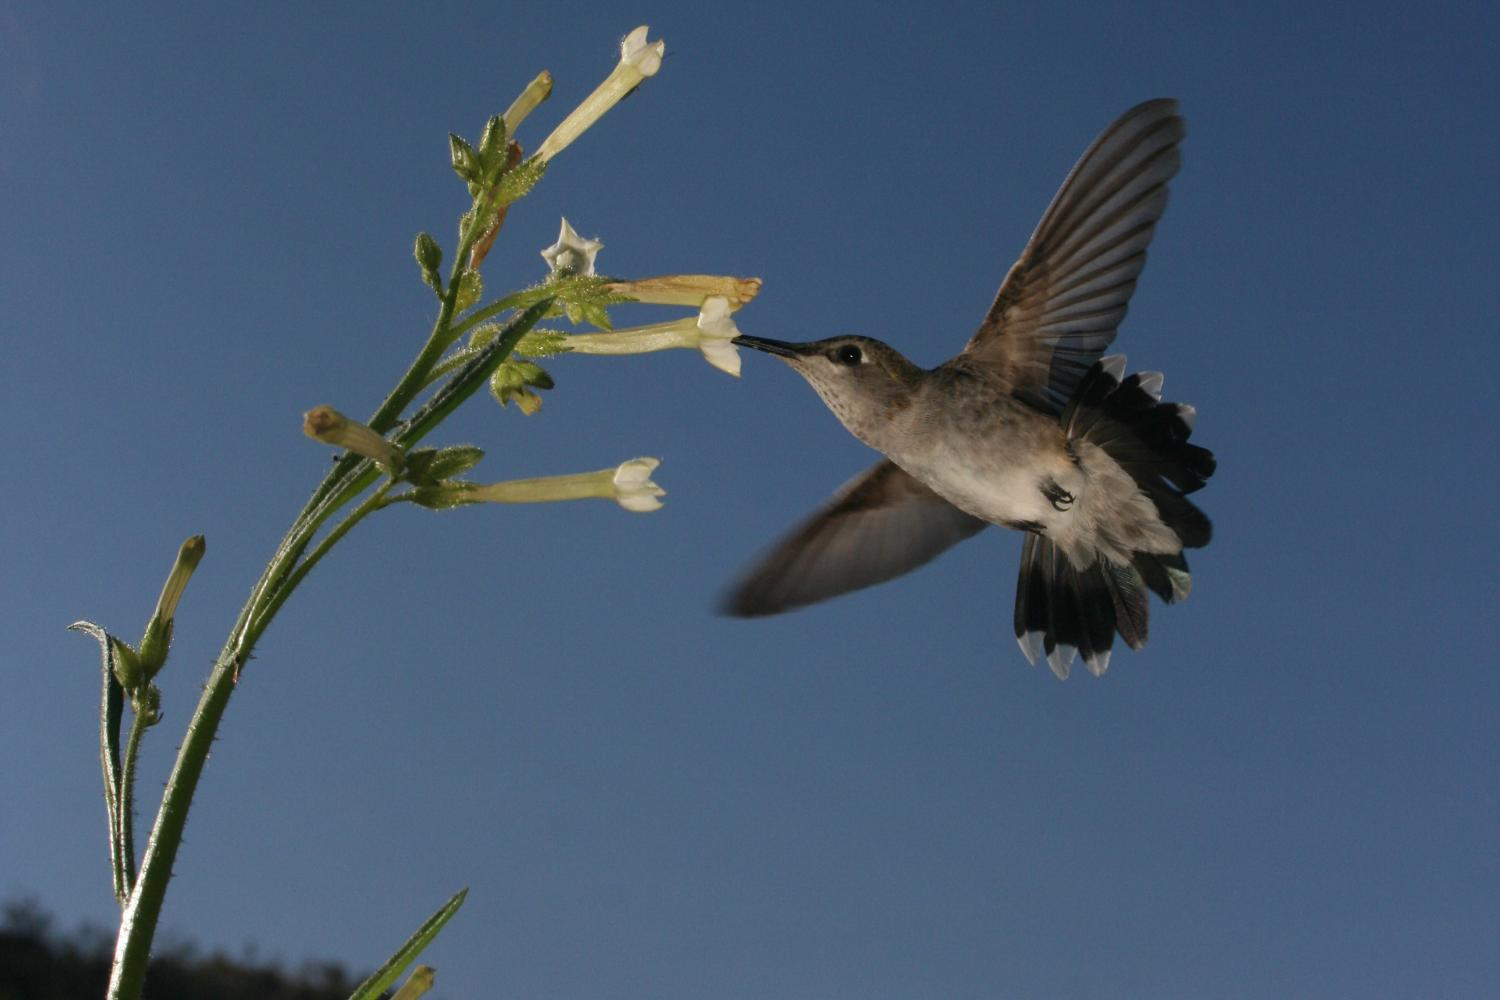 Flowering Tobacco Attracts Hummingbirds | Amazing Flowers That Attract Hummingbirds To Keep In Your Homestead